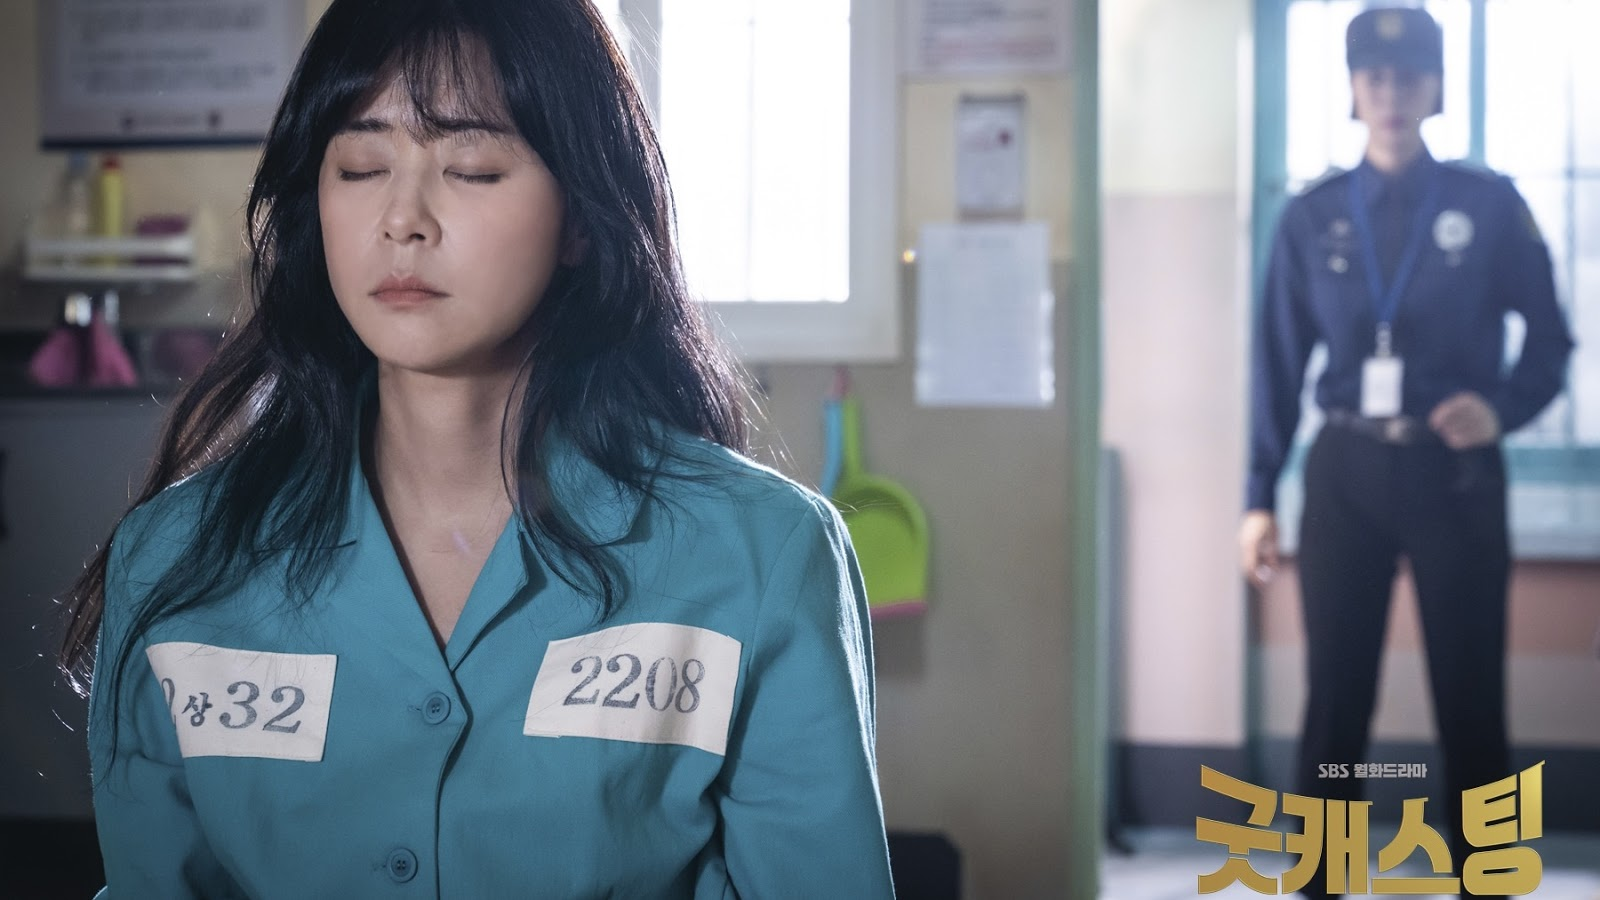 The Latest Episode of The Drama 'Good Casting' Returns to Get The Highest Rating